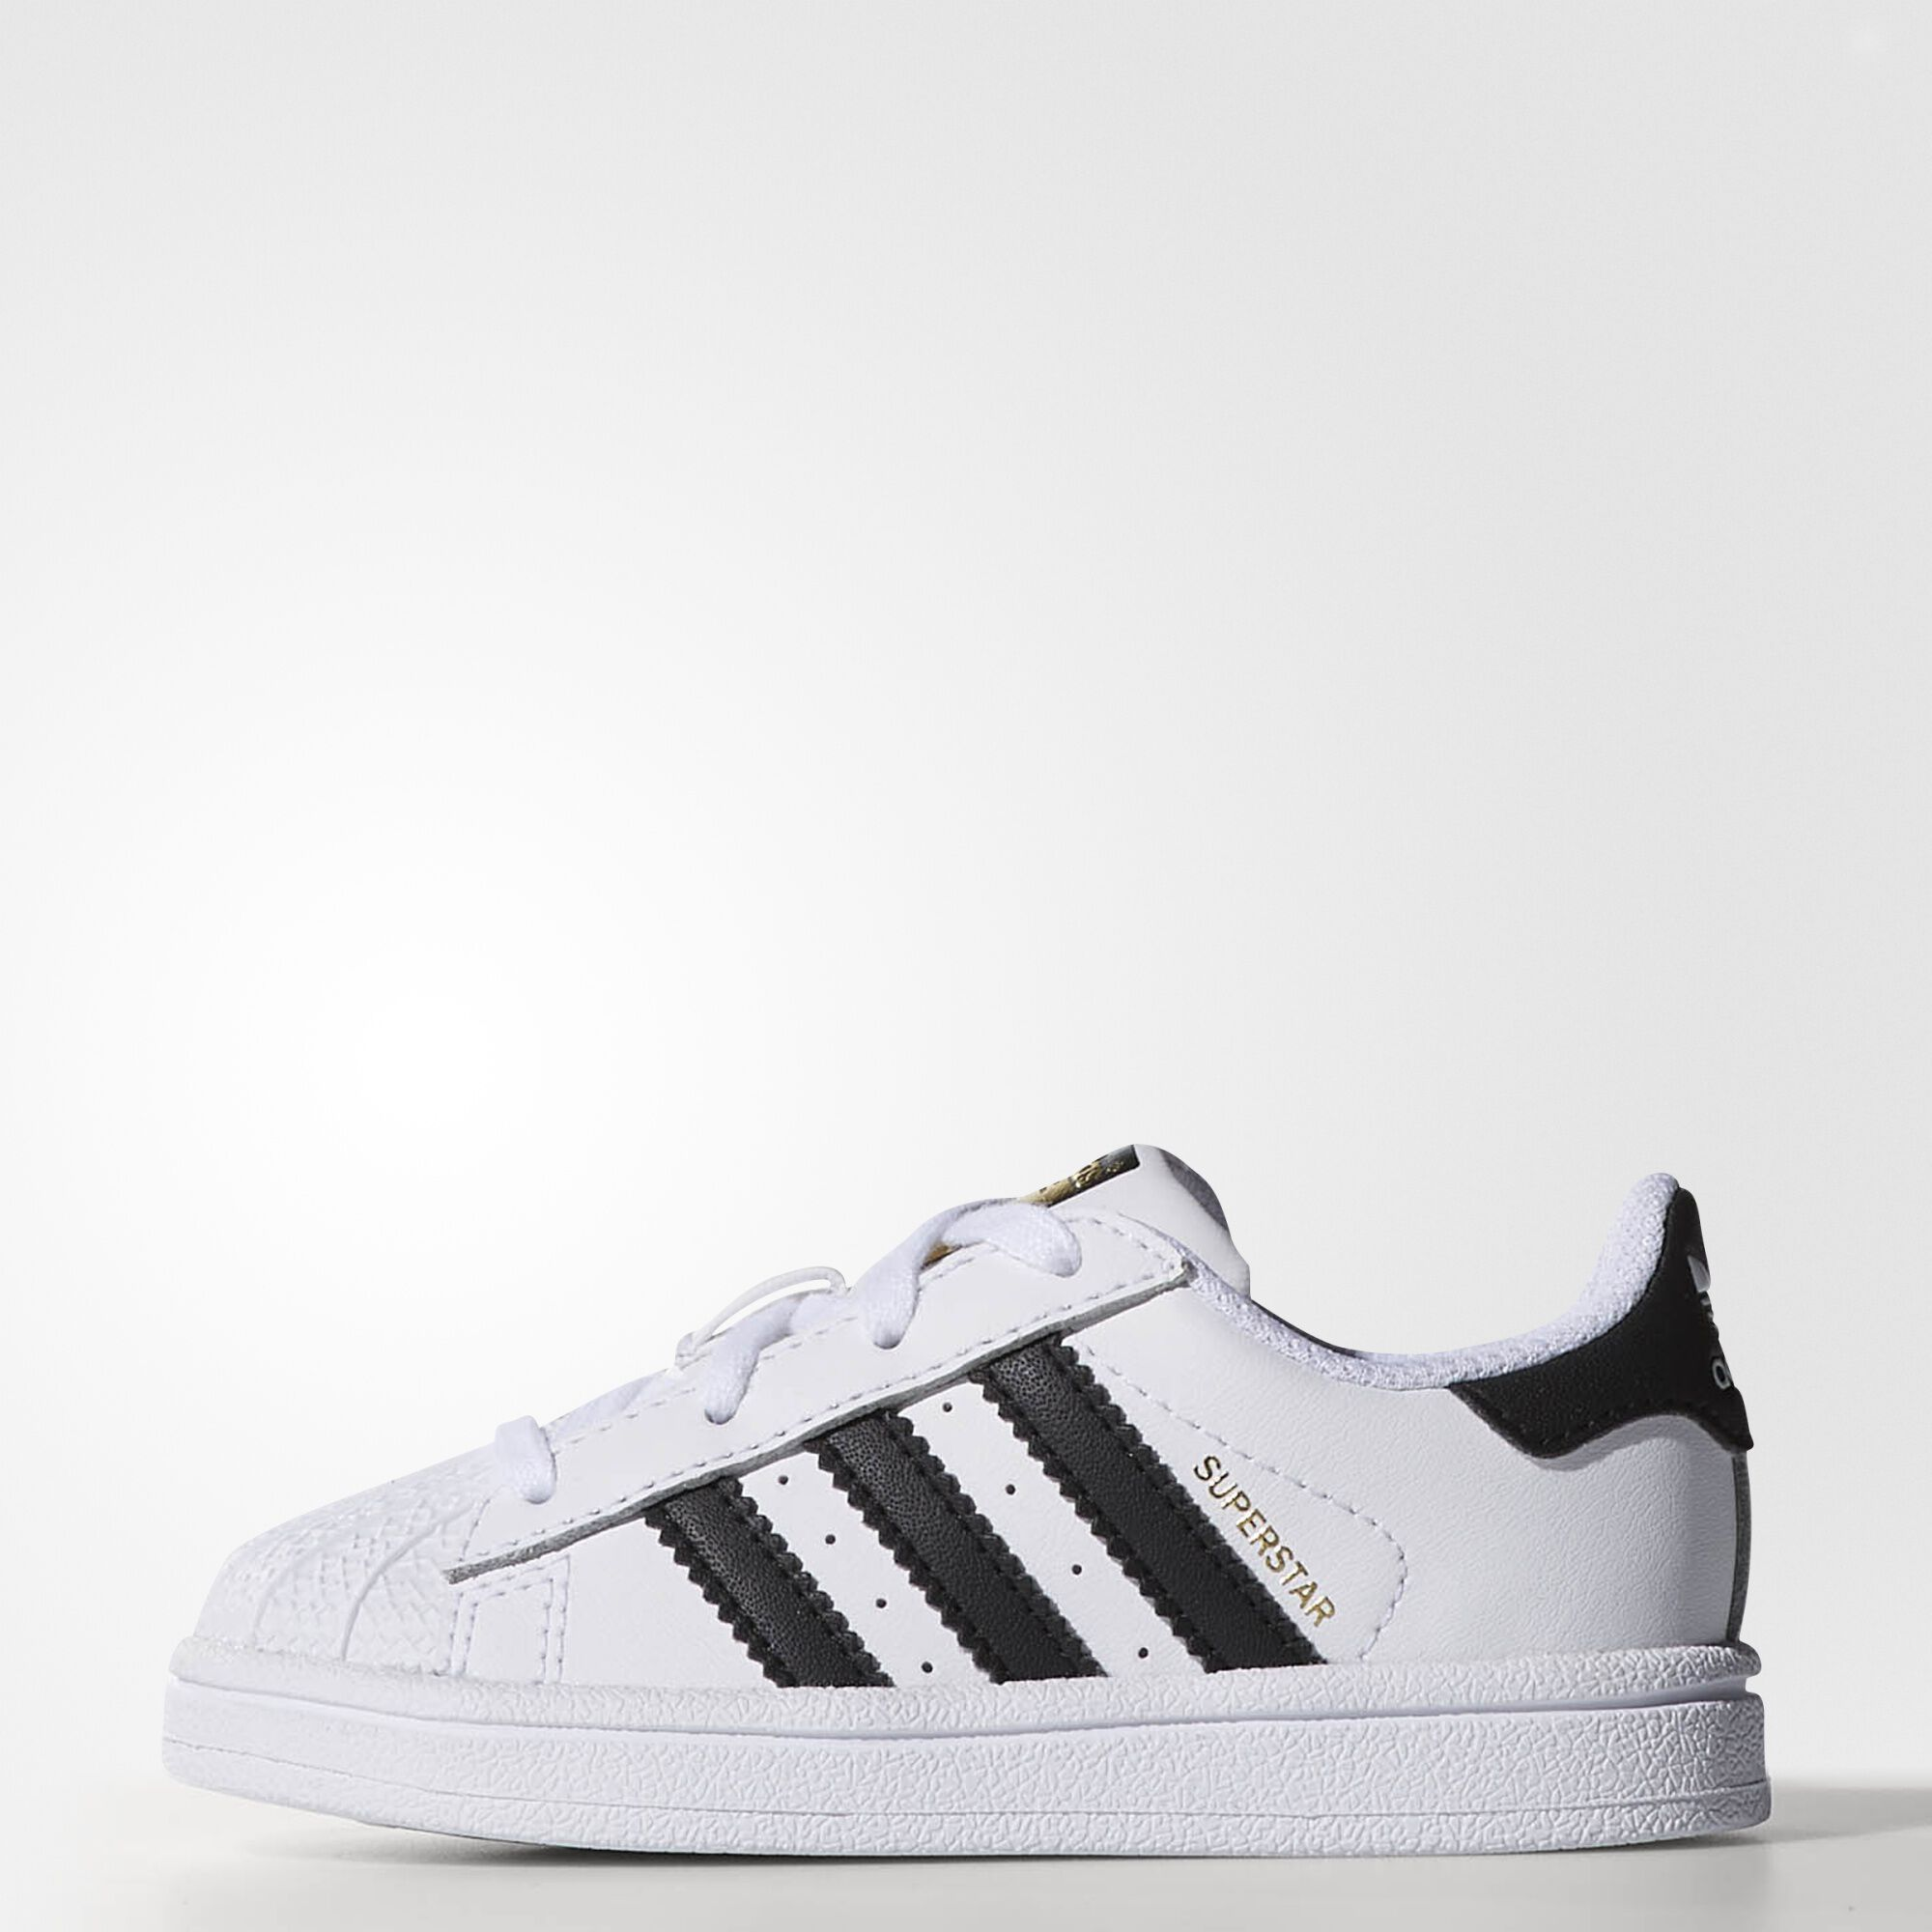 Adidas Superstars Bilder